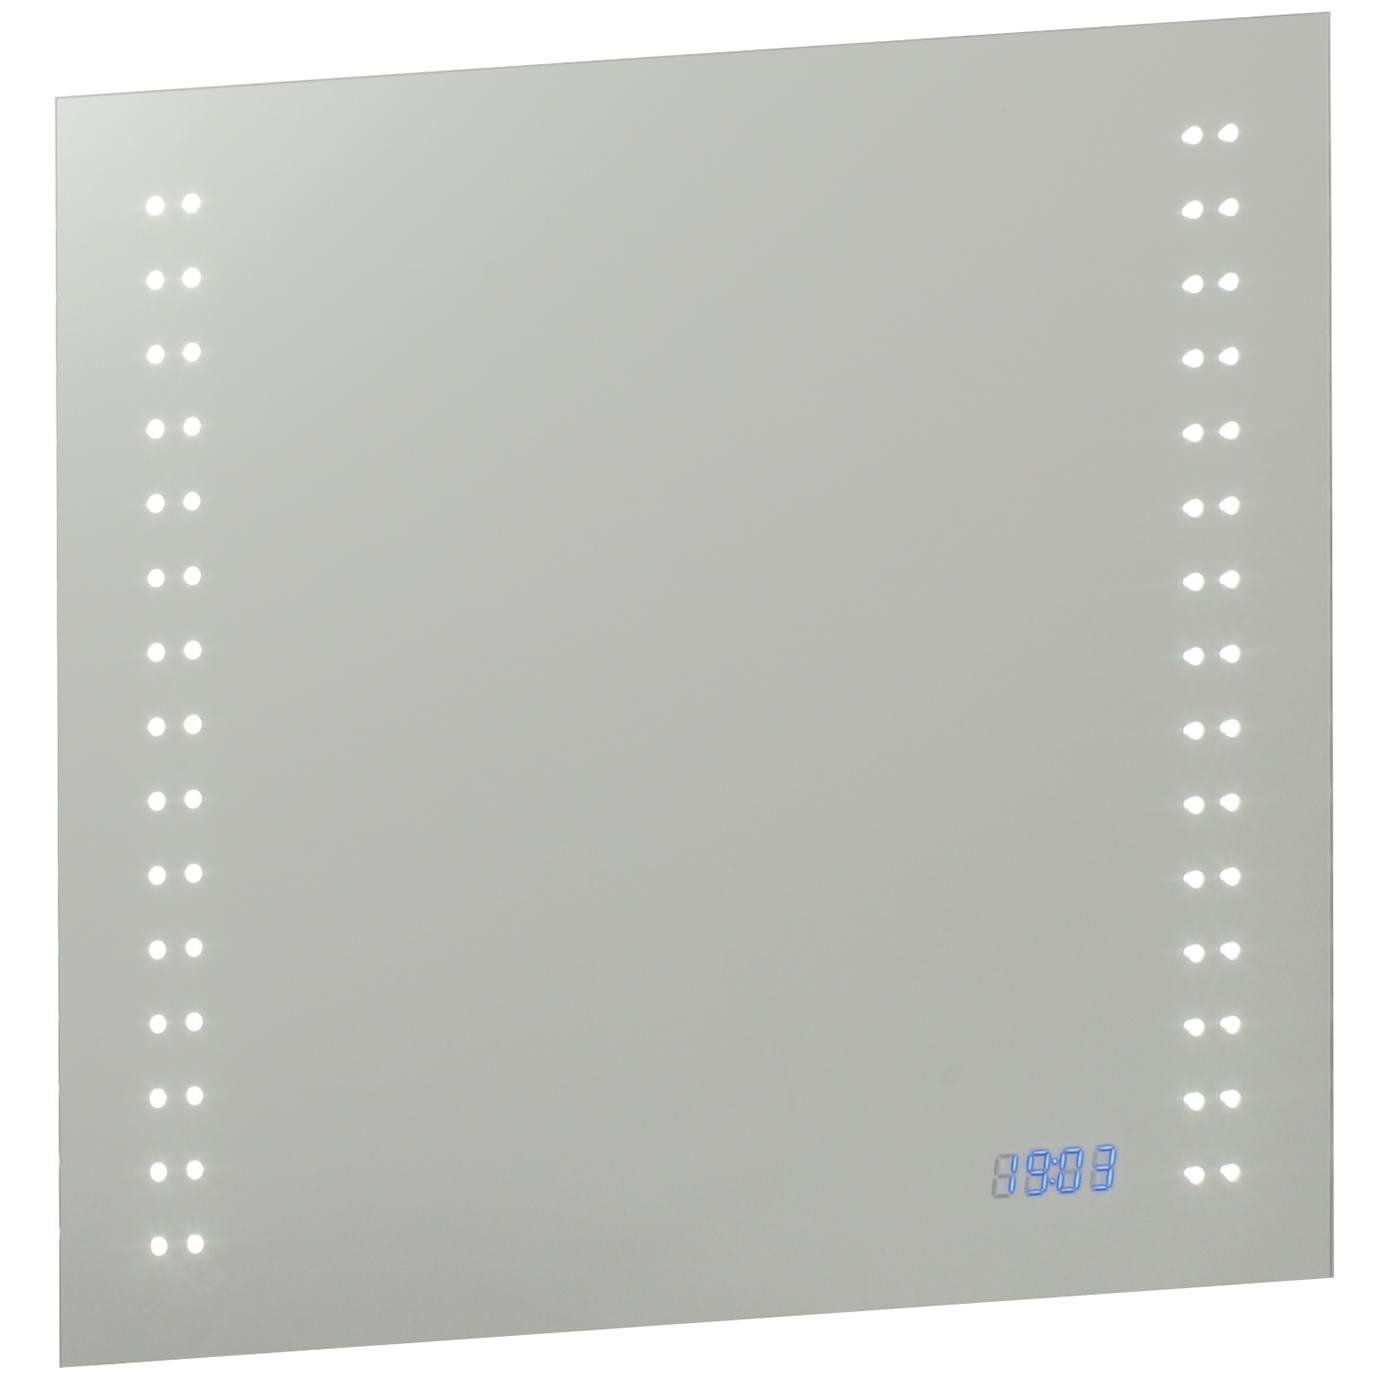 Endon Beta LED shaver bathroom mirror IP44 2W sensor H: 600mm W: 700mm